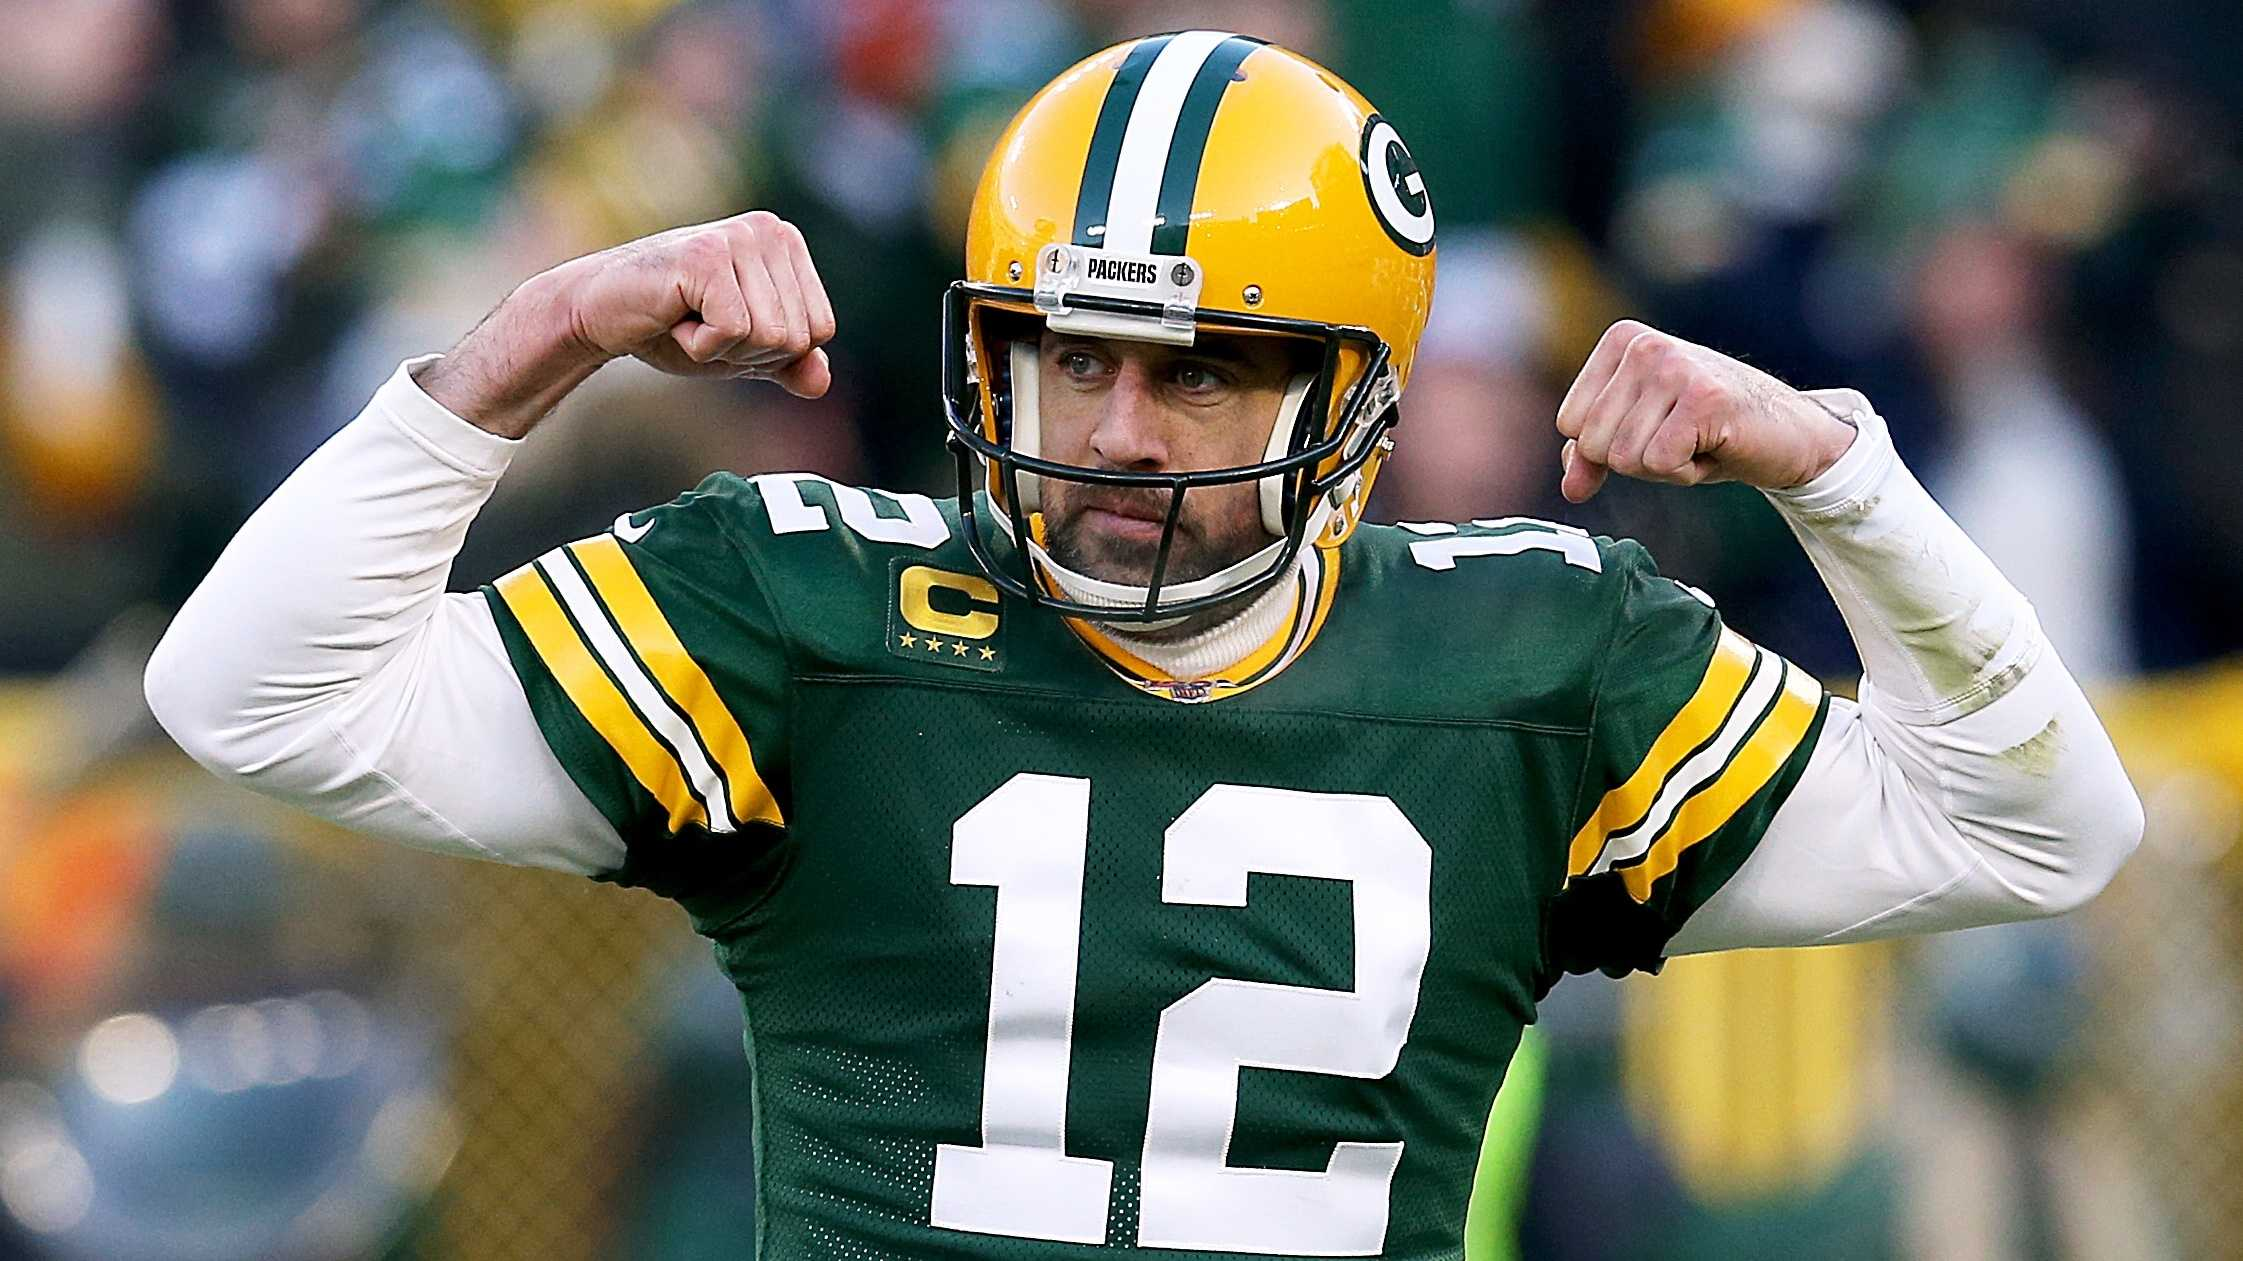 NFC North - Green Bay Packers